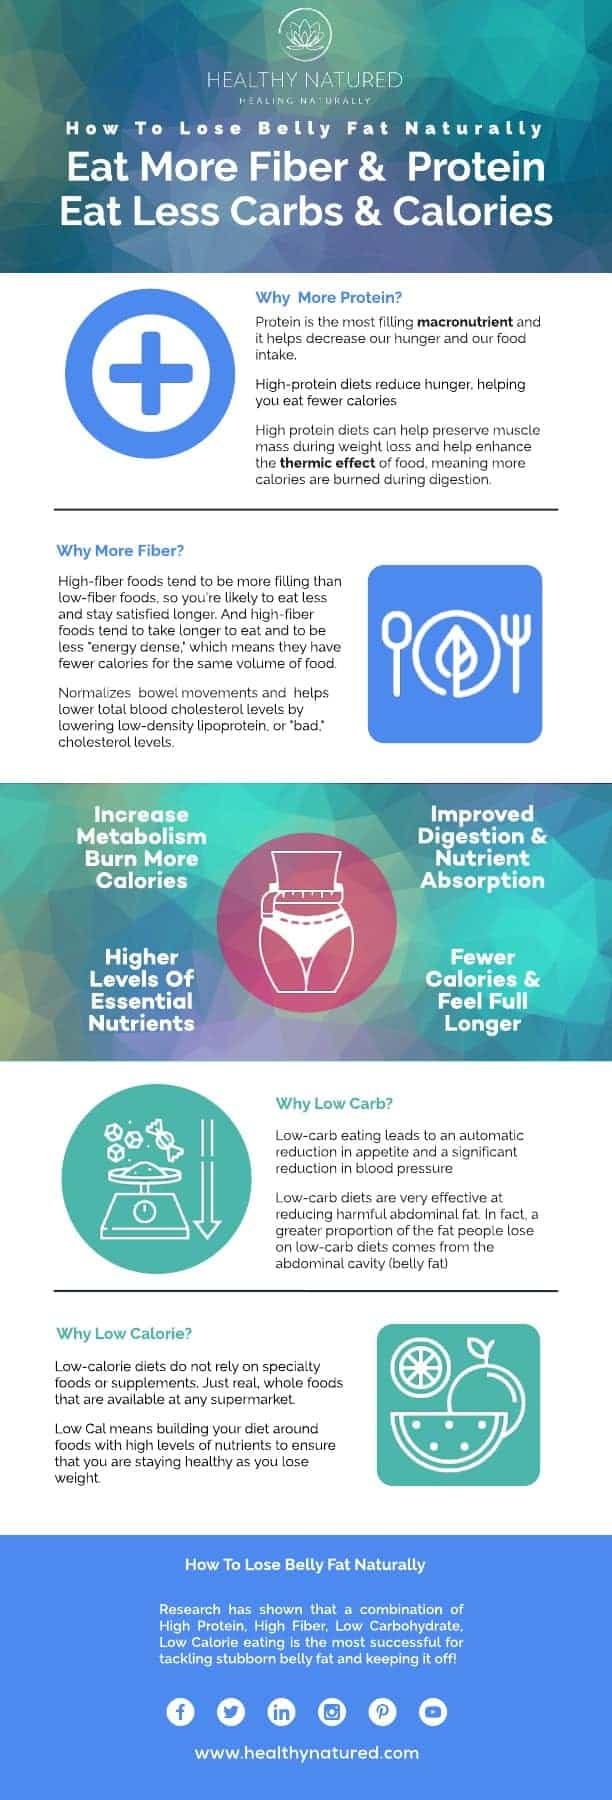 How To Lose Belly Fat Naturally Infographic Hn